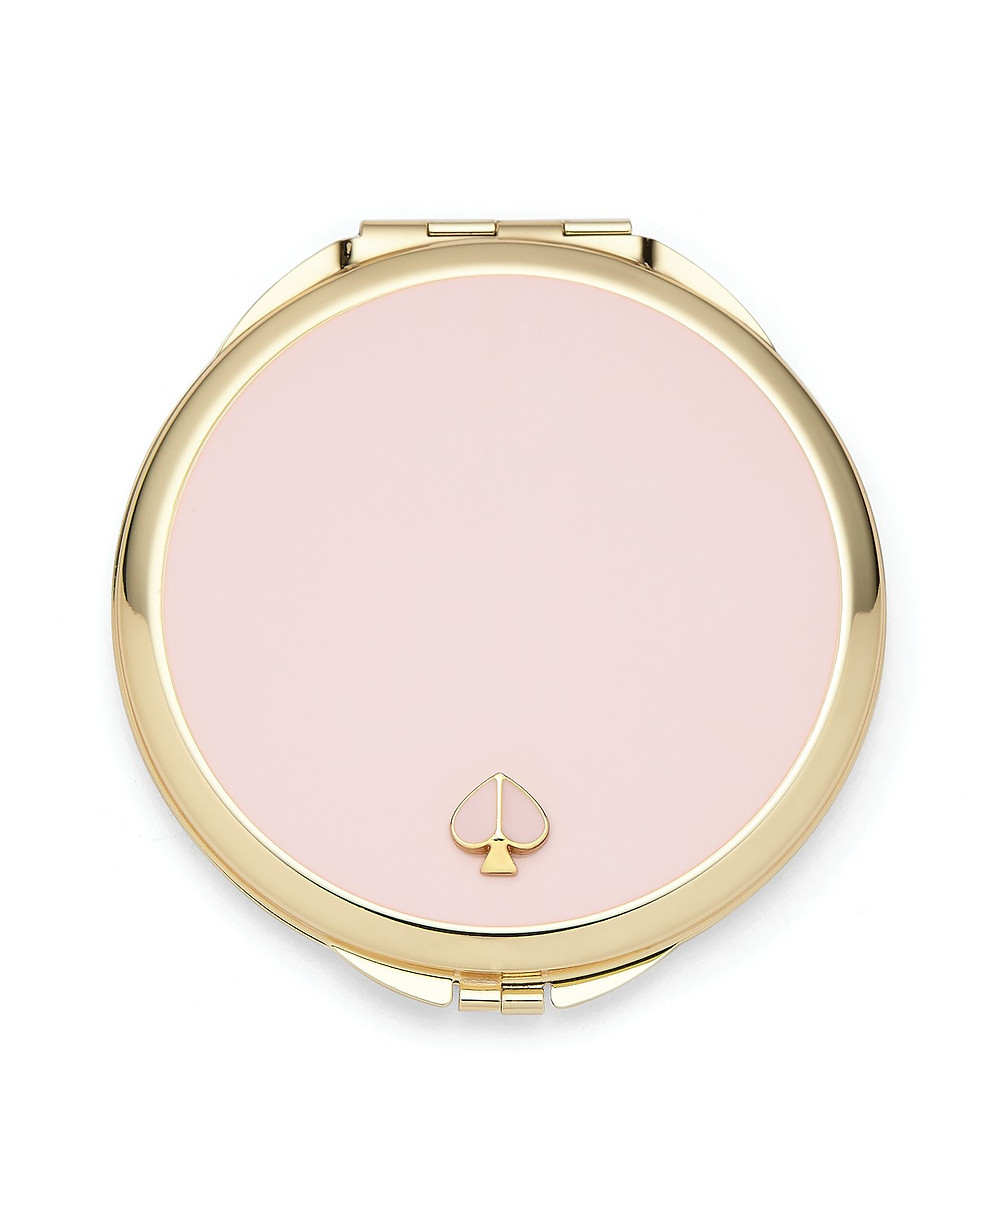 pink mirror compact